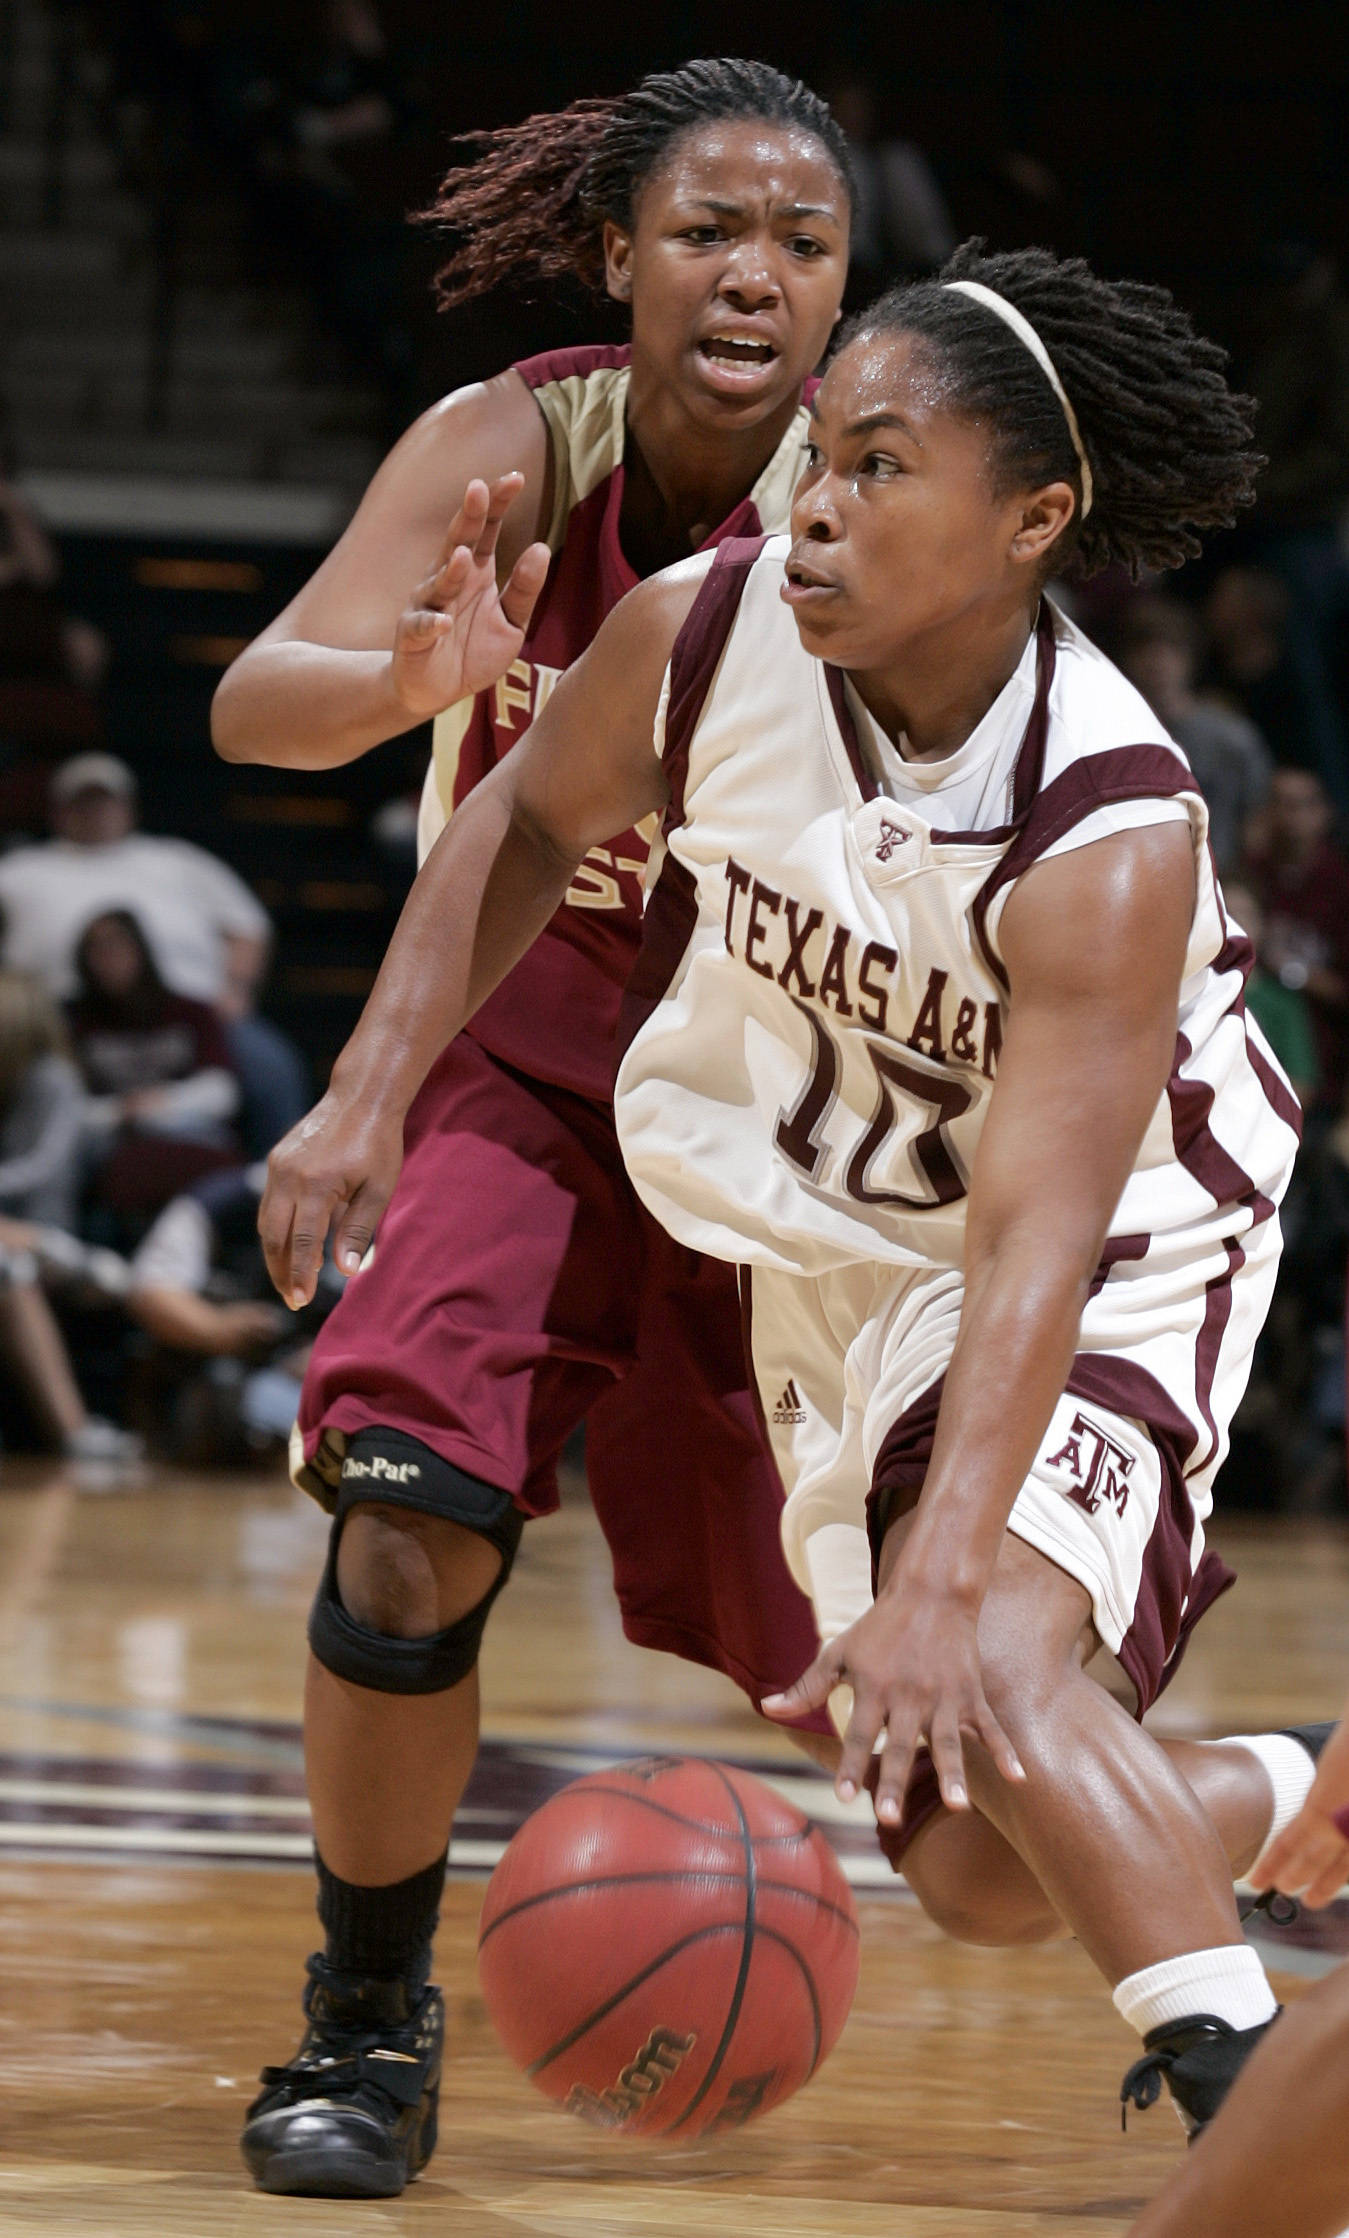 Texas A&M's A'Quonesia Franklin drives past Florida State's Angel Gray during the first half of a basketball game Thursday, Dec. 6, 2007, at Reed Arena in College Station, Texas. (AP Photo/Paul Zoeller)